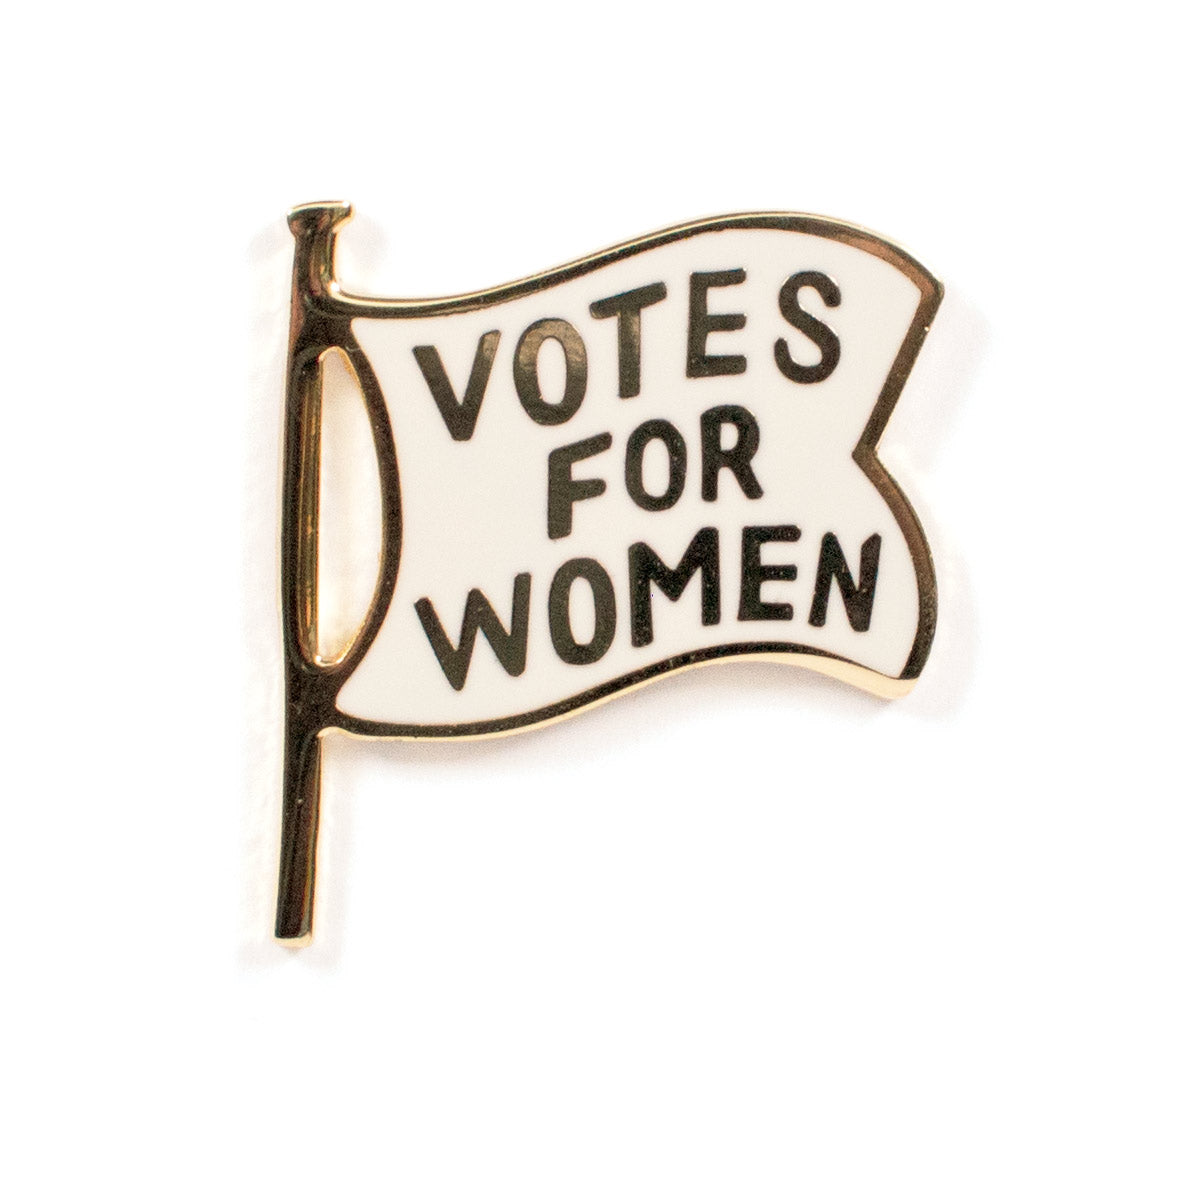 19th Amendment Pin Set